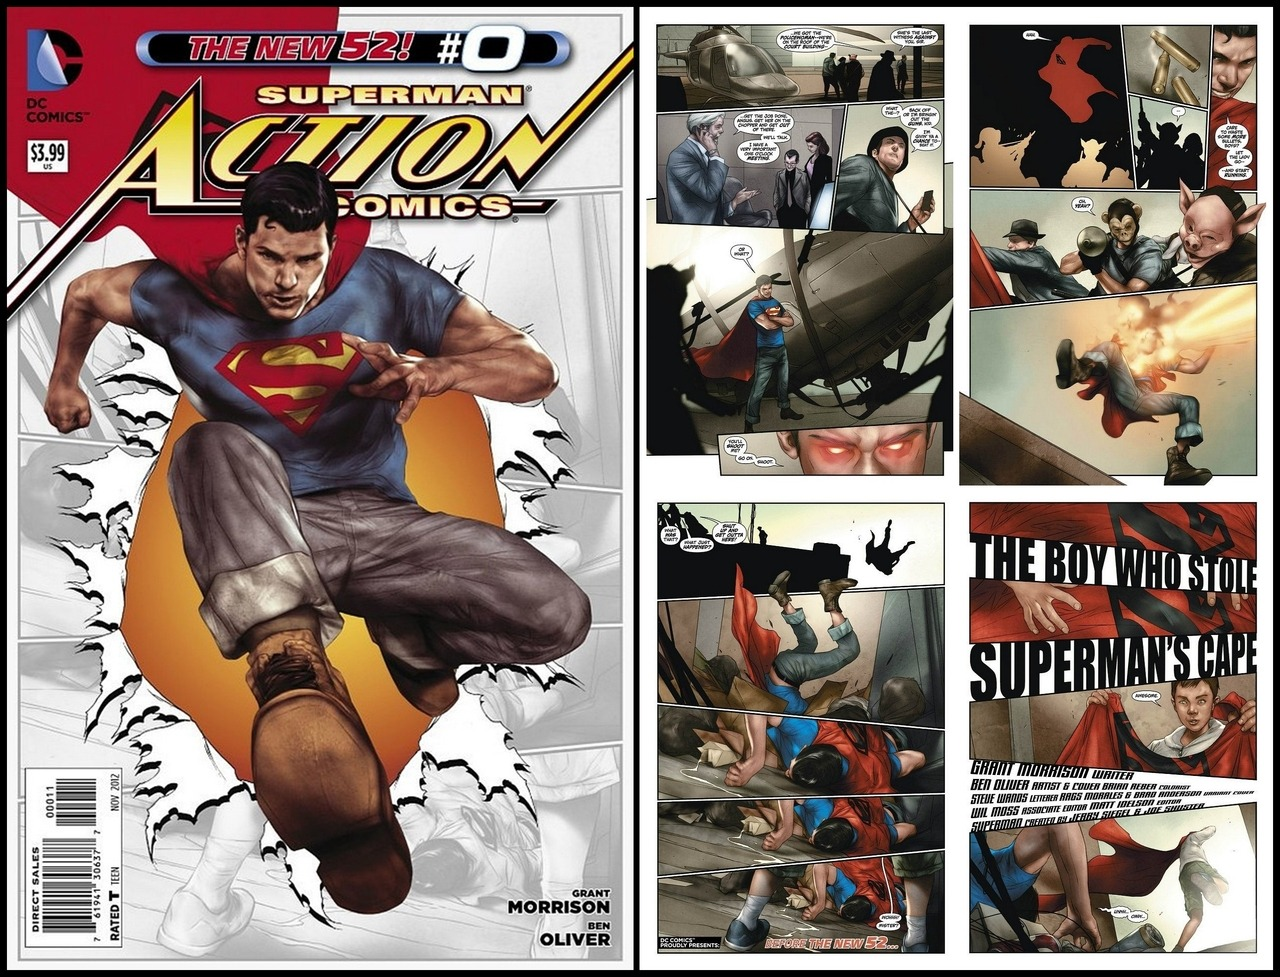 Preview Action Comics #0 Morrison returns to Clark Kent's early days in Metropolis